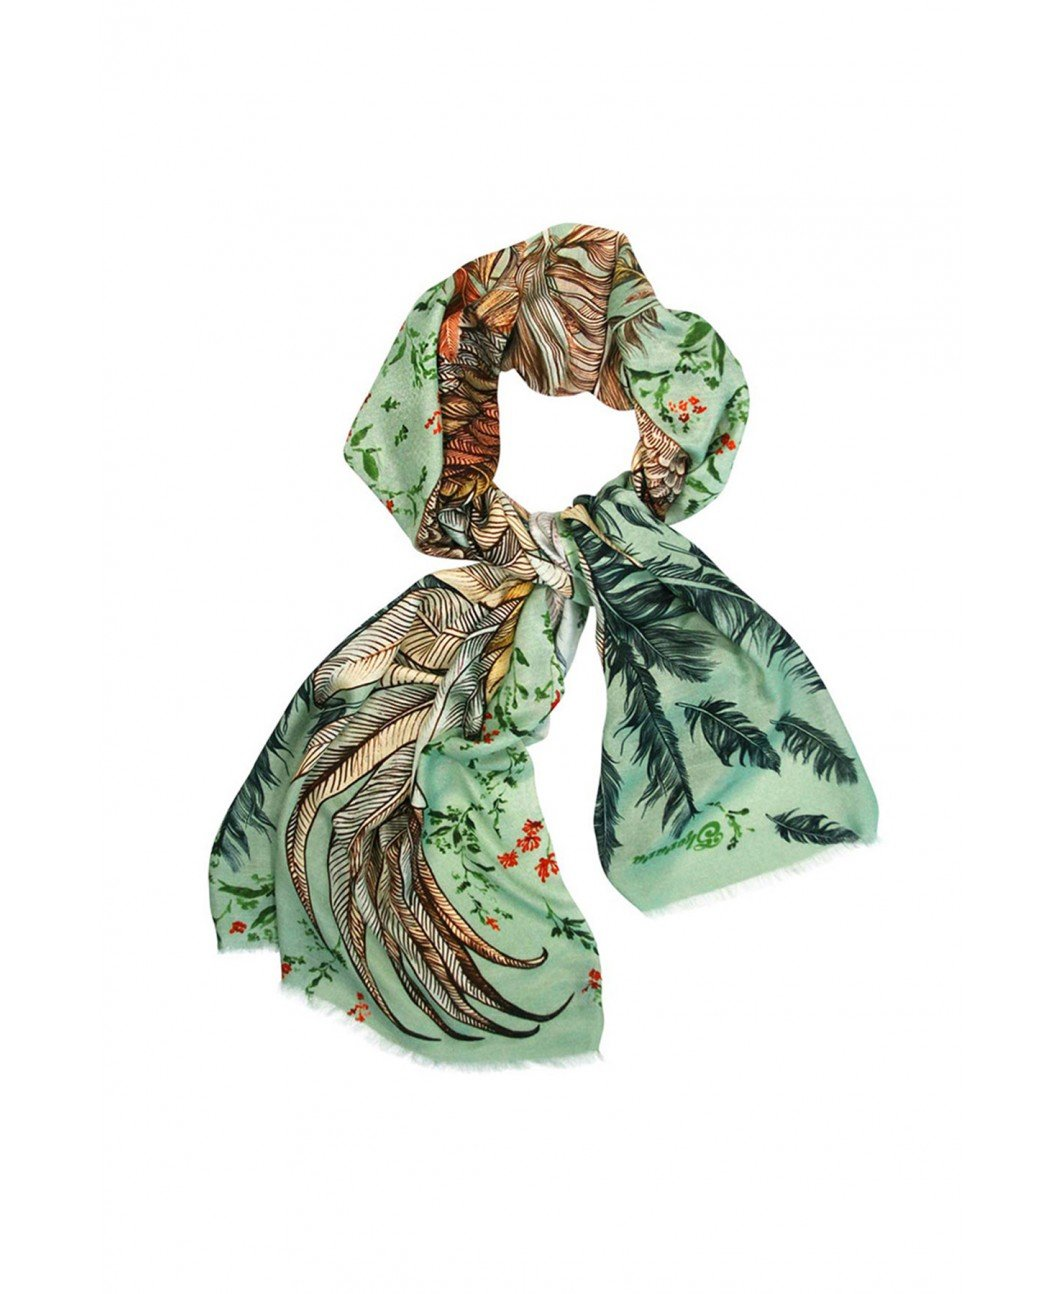 VINTAGE GREEN SCARF - By Shovava